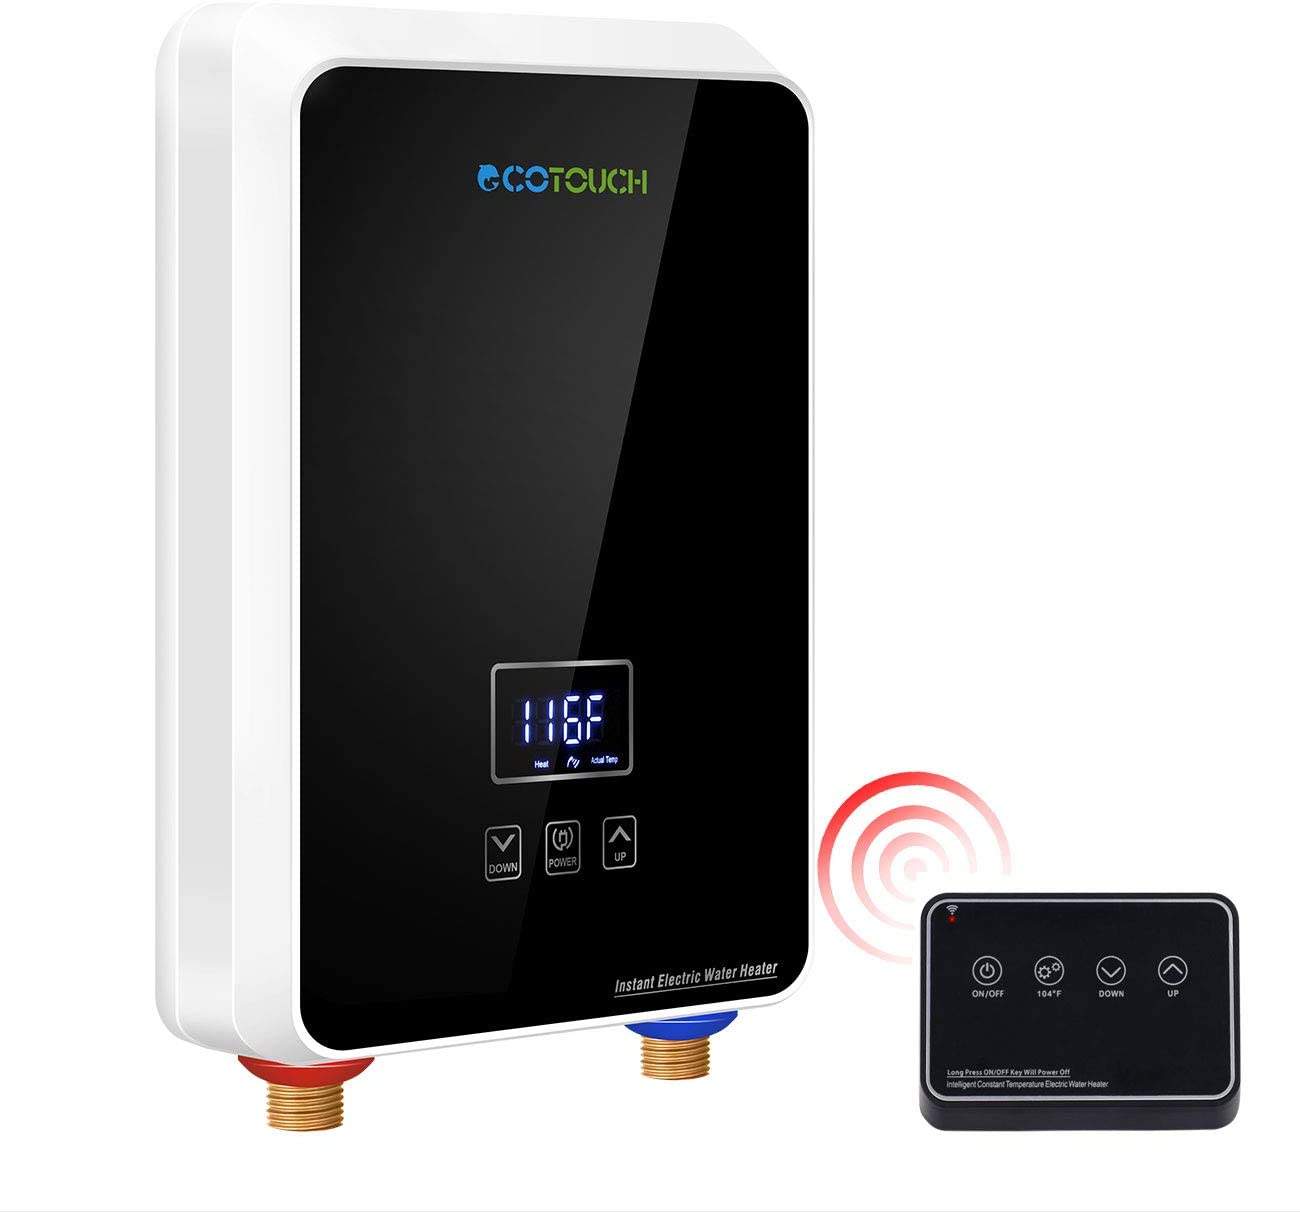 Electric Tankless Water Heater with Wi-fi